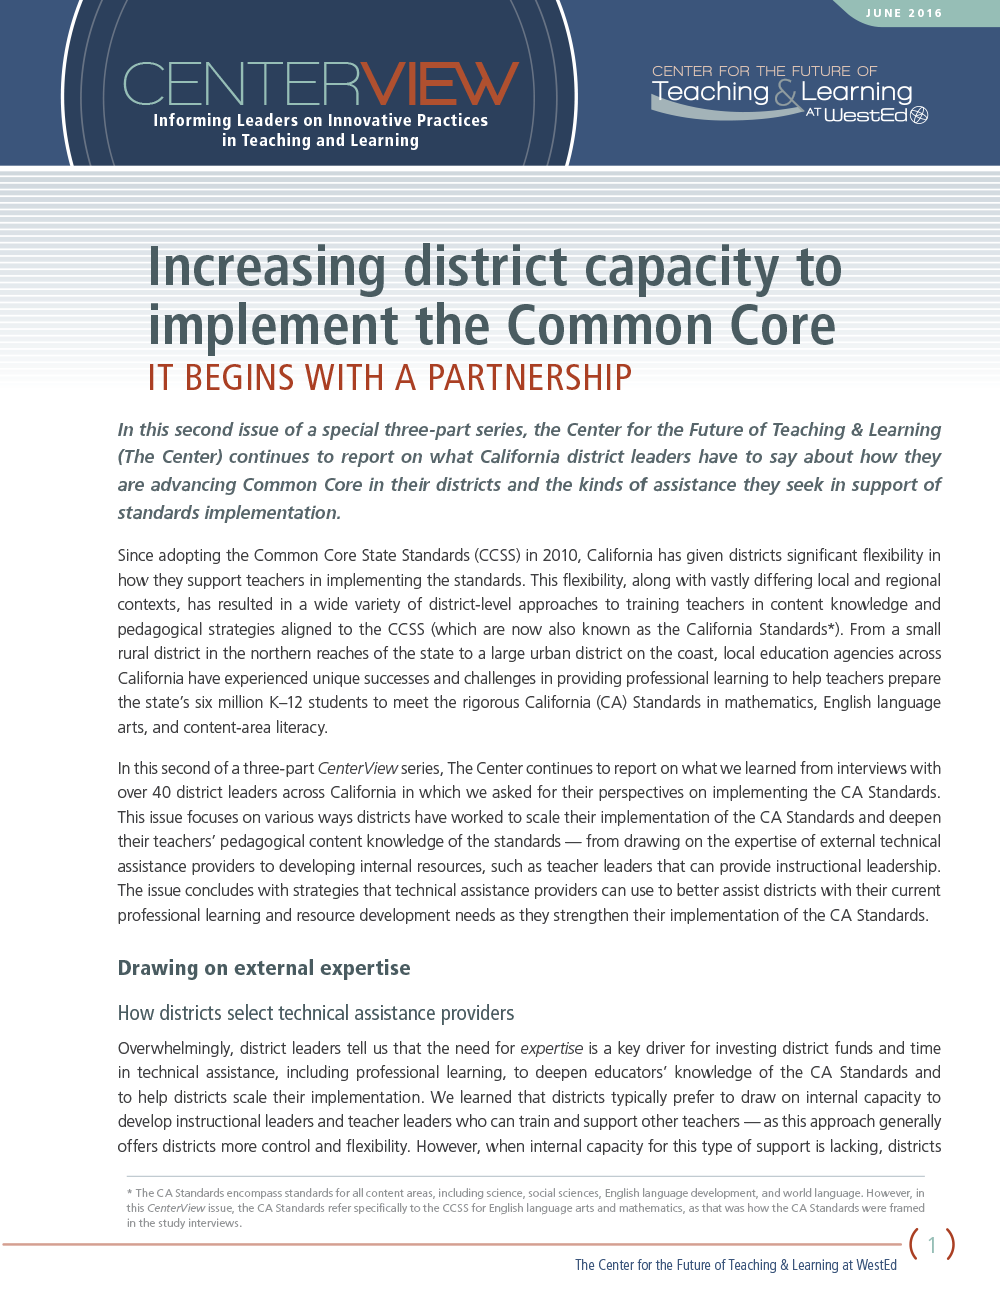 Cover CenterView: Increasing District Capacity to Implement the Common Core — It Begins With a Partnership